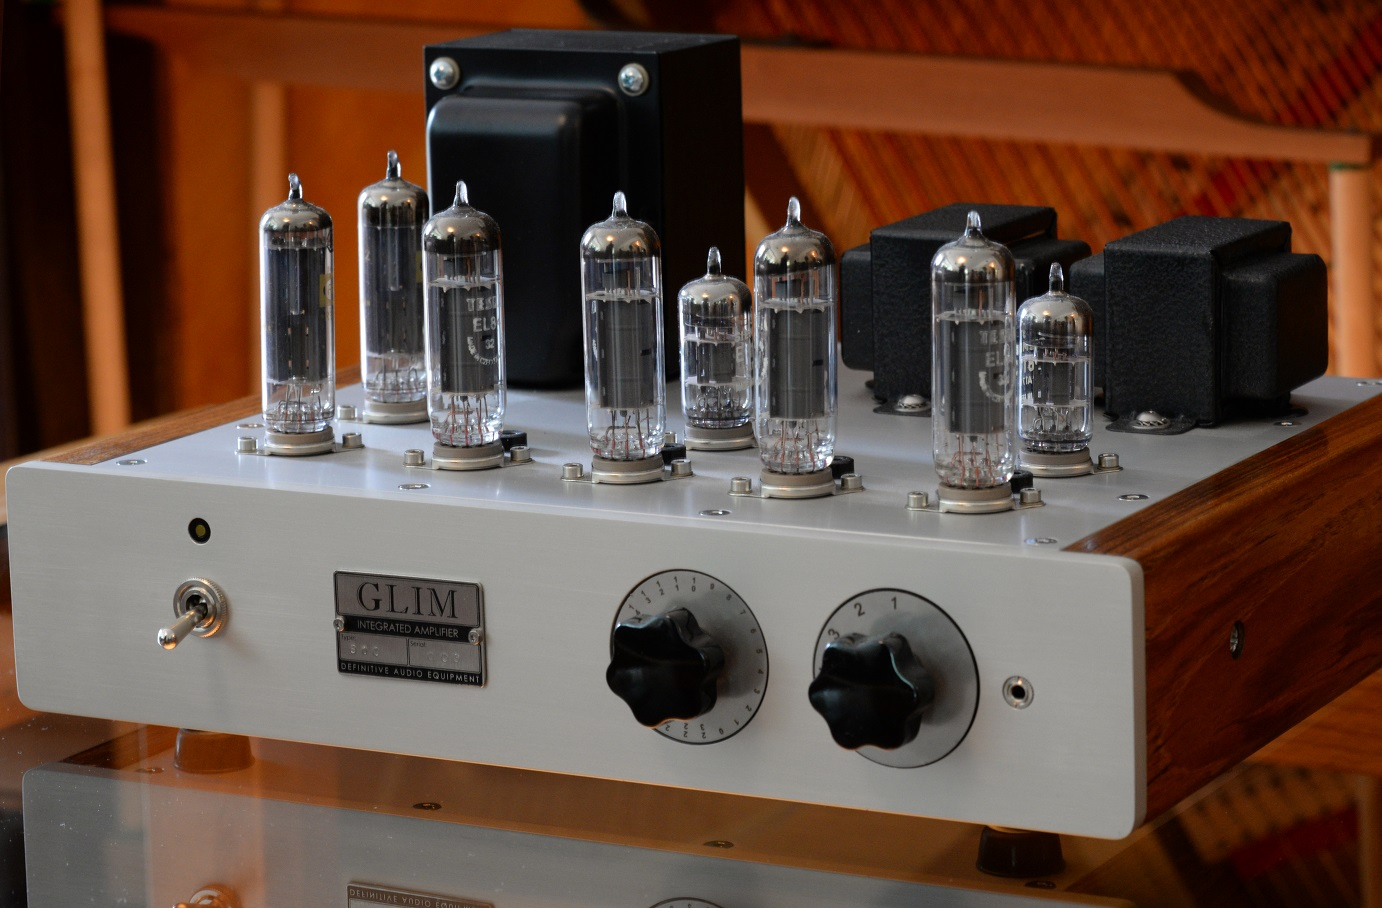 GLIM S10MkII integrated amplifier